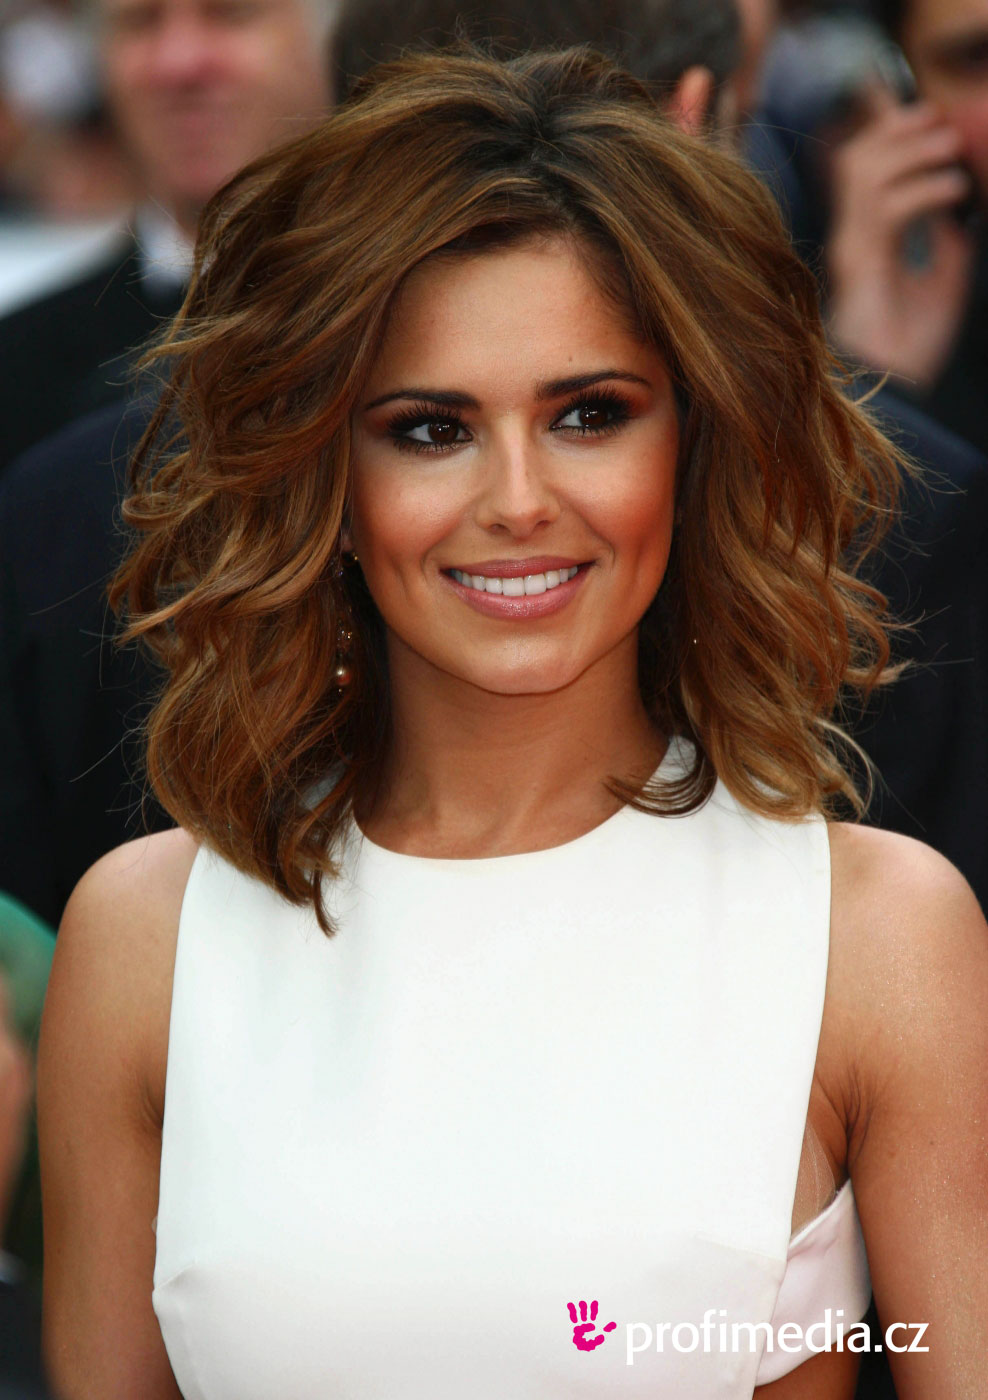 Prom hairstyle - Cheryl Cole - Cheryl Cole